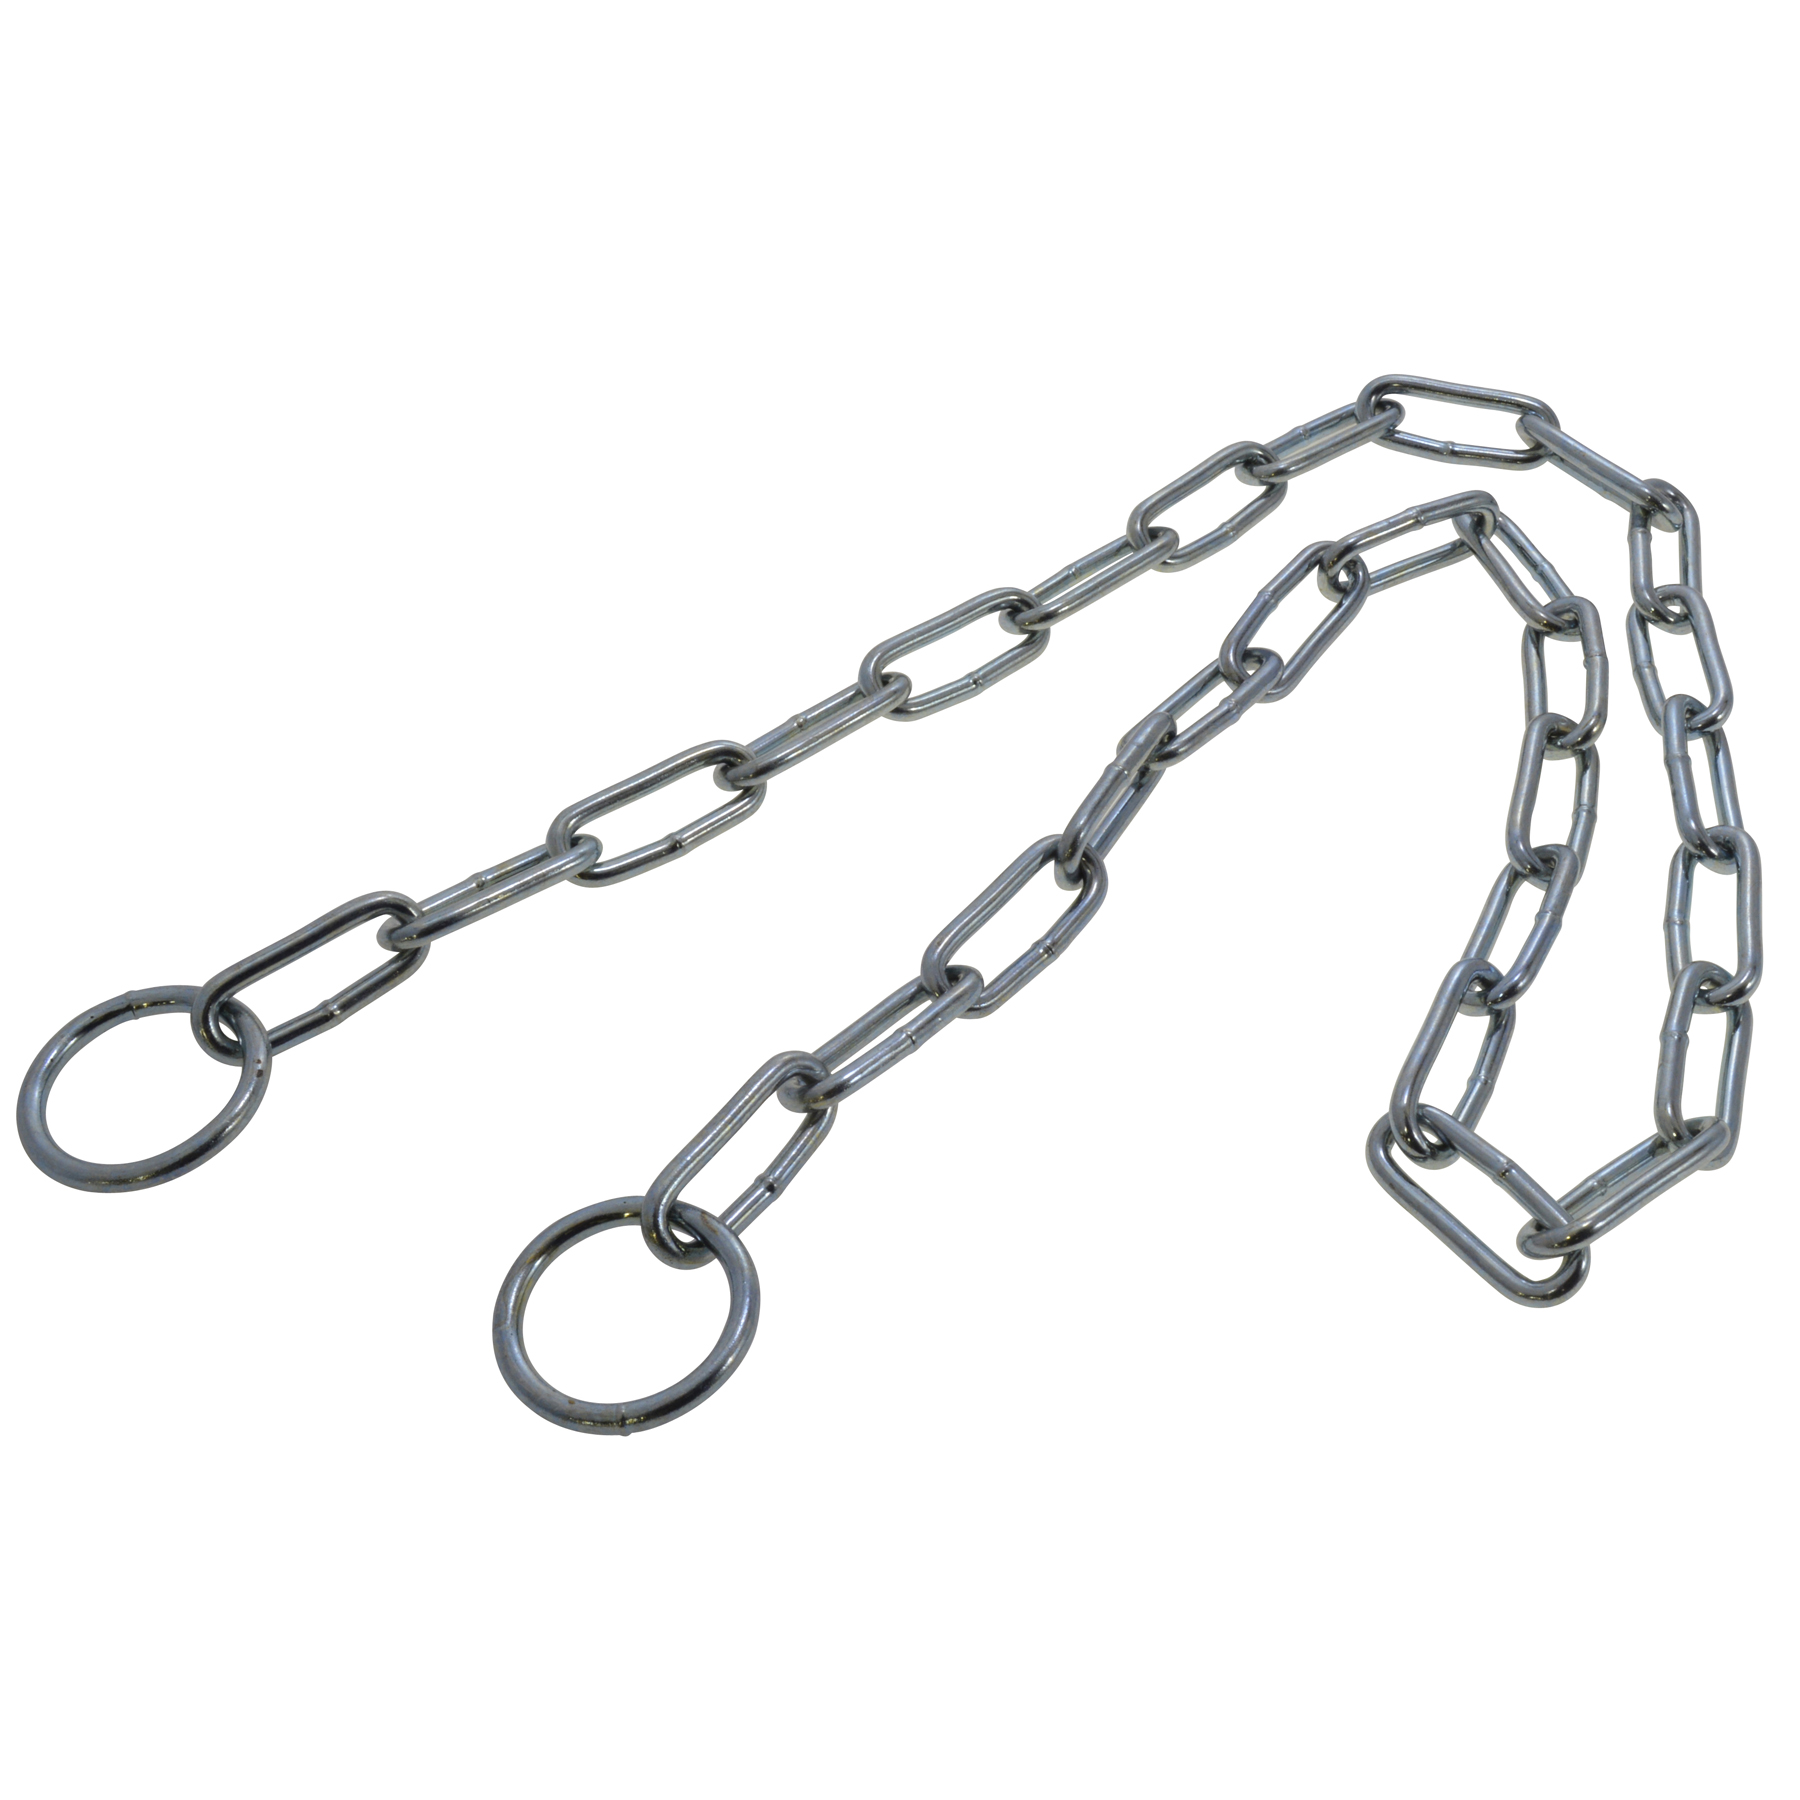 Iron Core Chain (Bright Chromate)